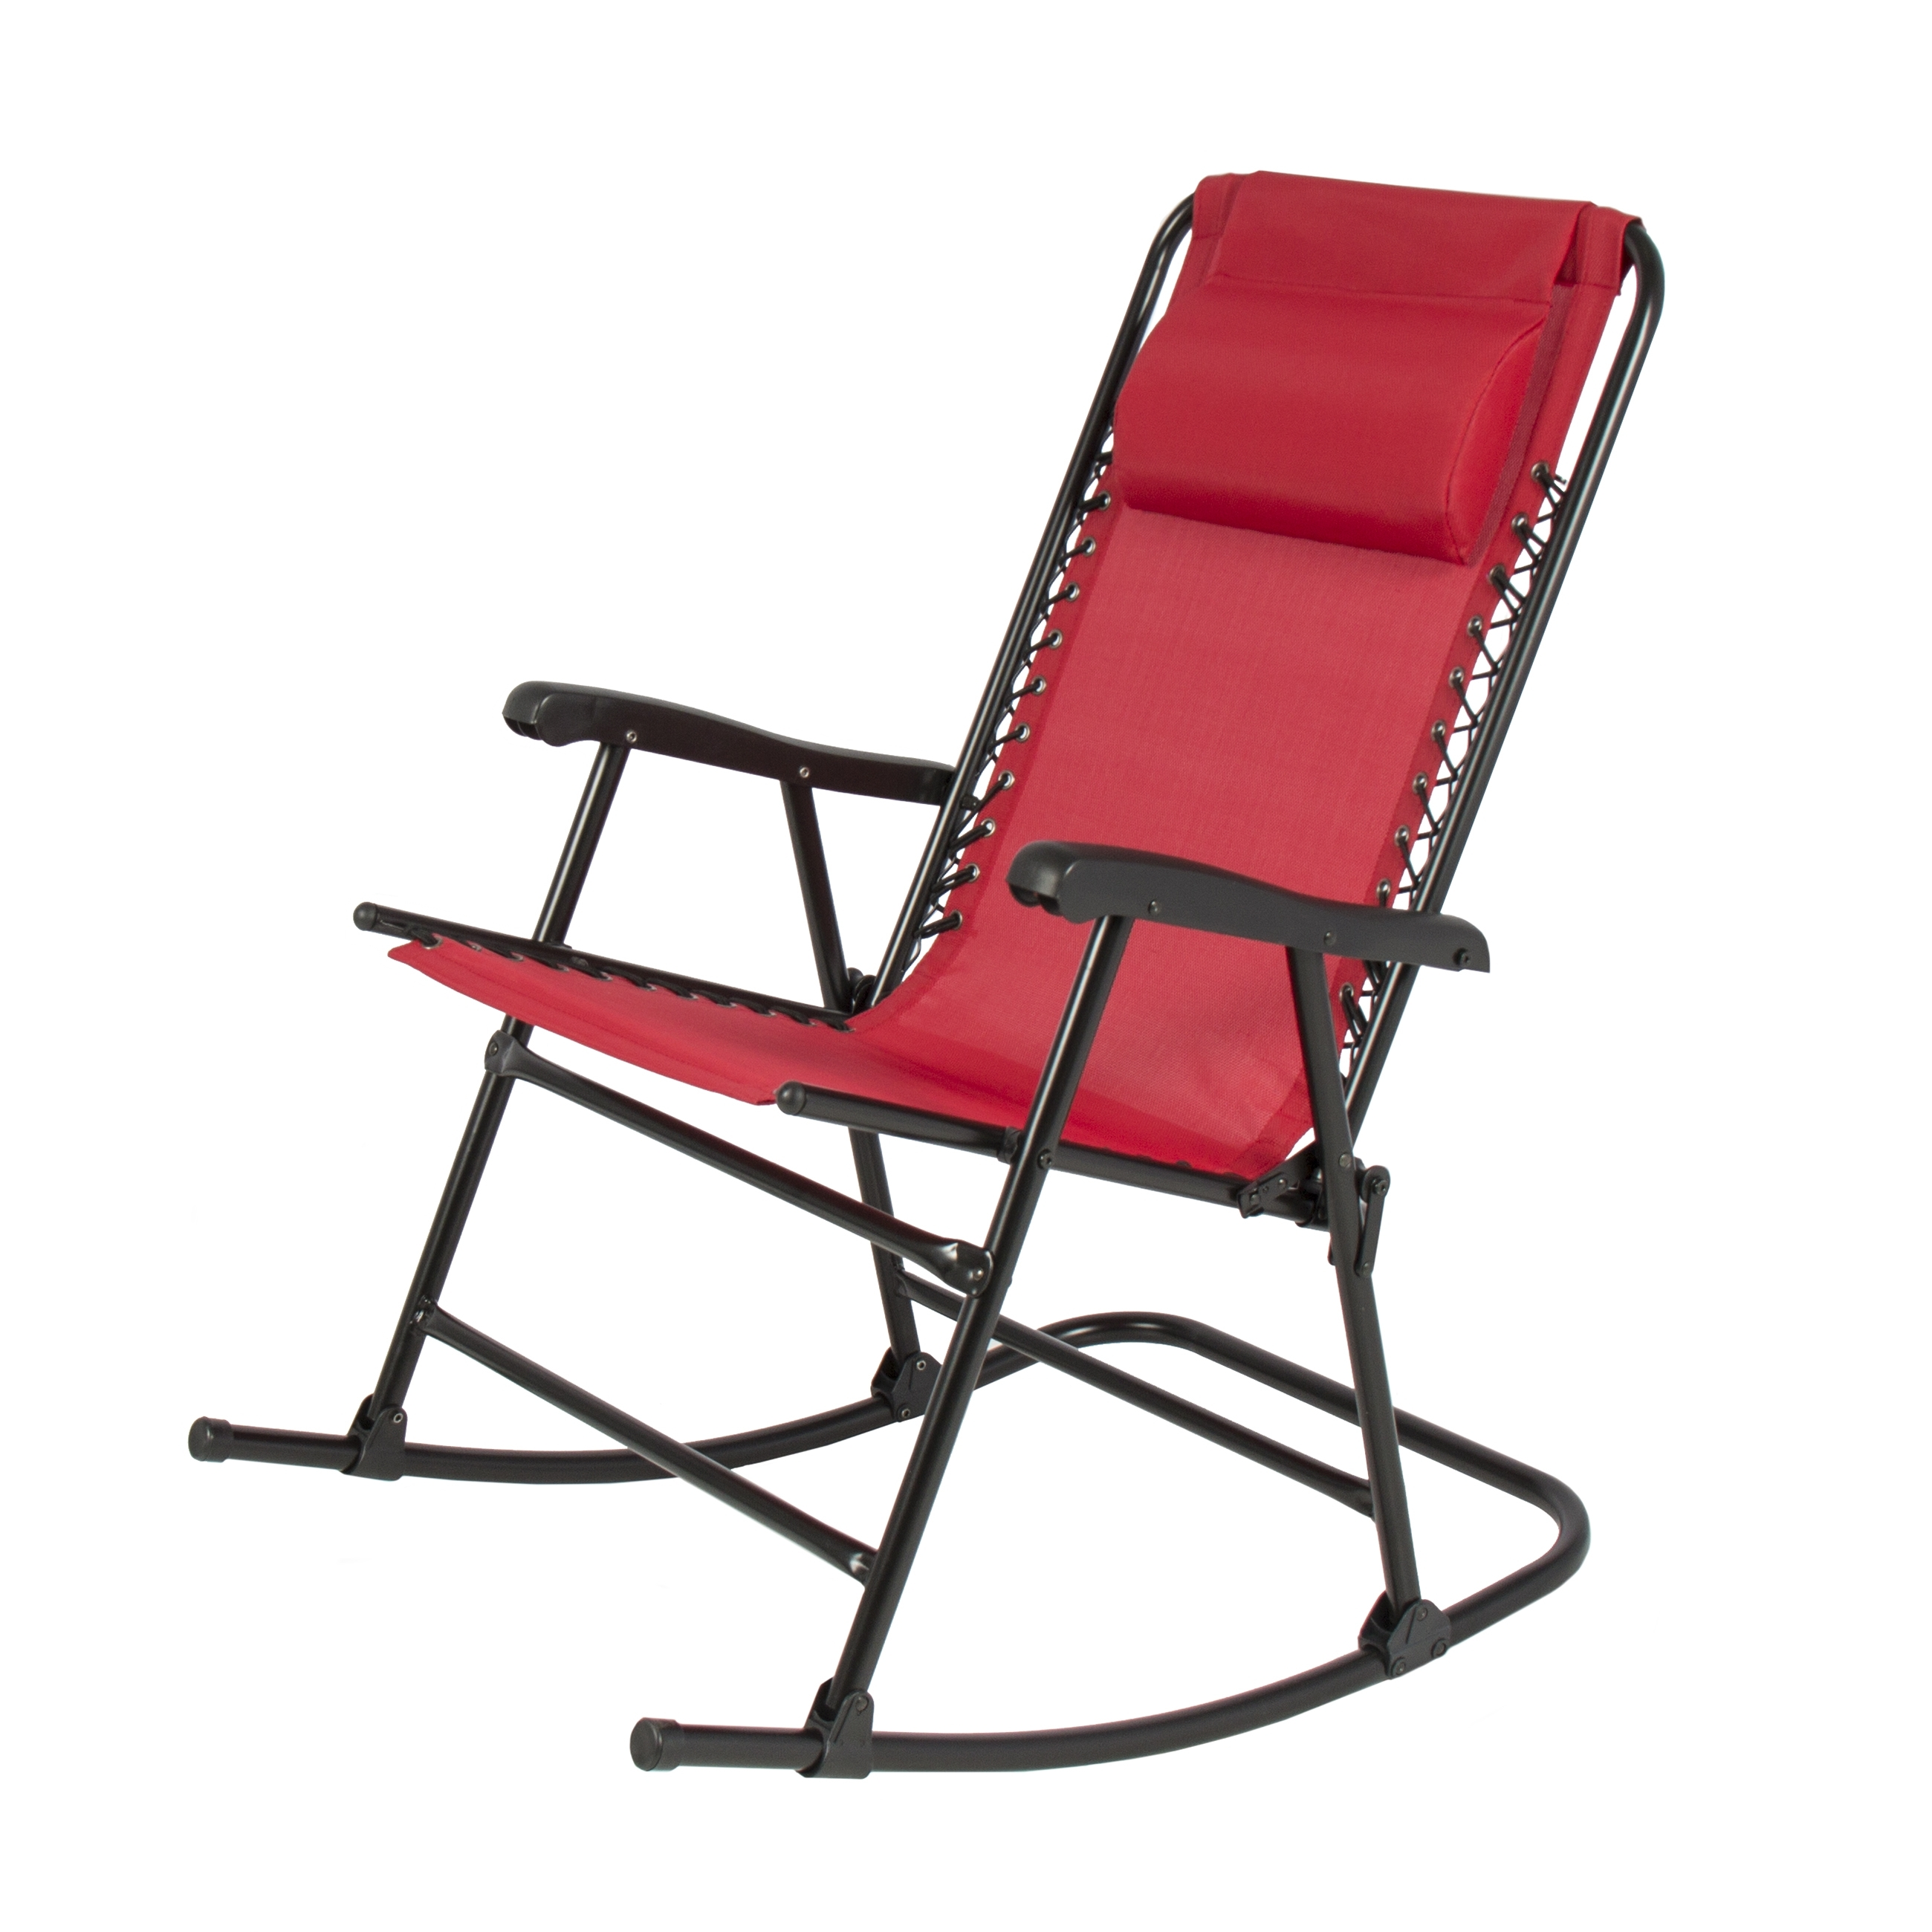 Red Patio Rocking Chairs Intended For Most Recent Amazing Of Rocking Patio Chairs Folding Rocking Chair Foldable (View 12 of 20)